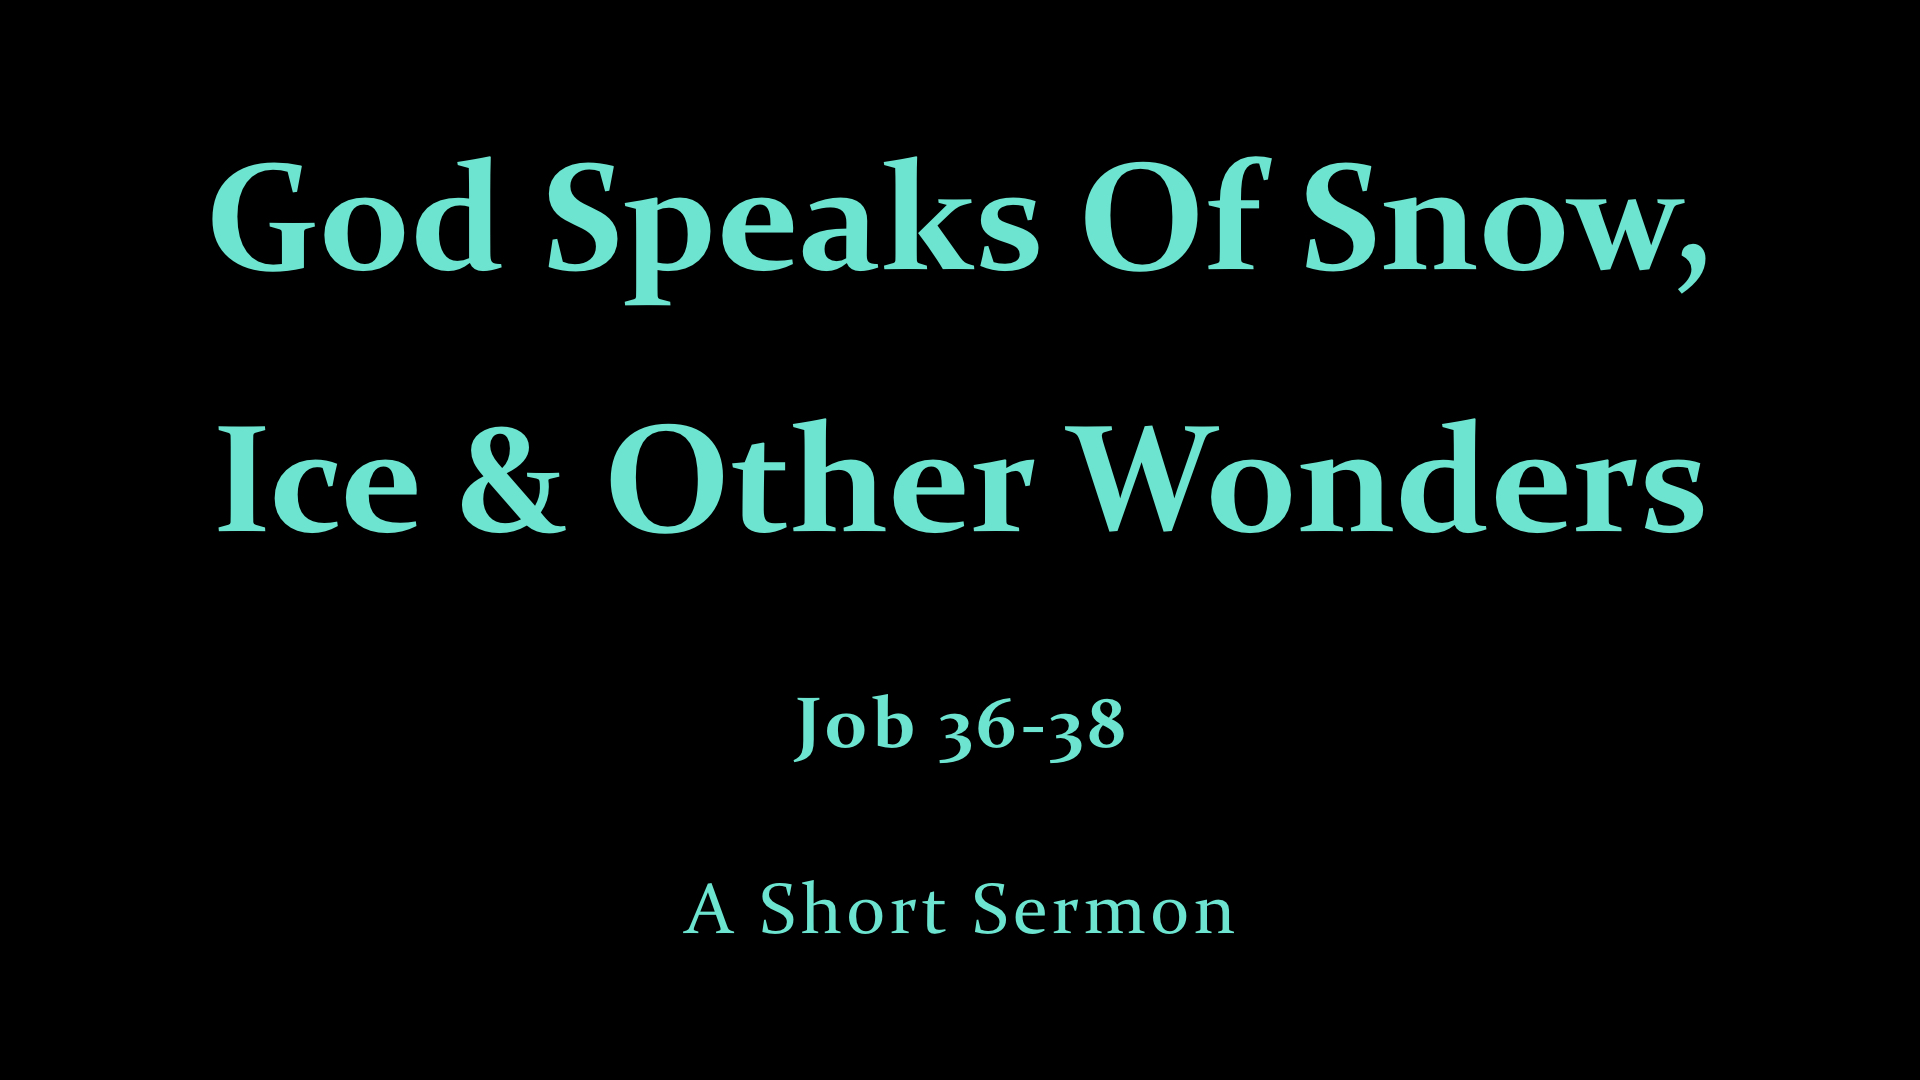 God Speaks Of Snow, Ice & Other Wonders - A Short Sermon.jpeg